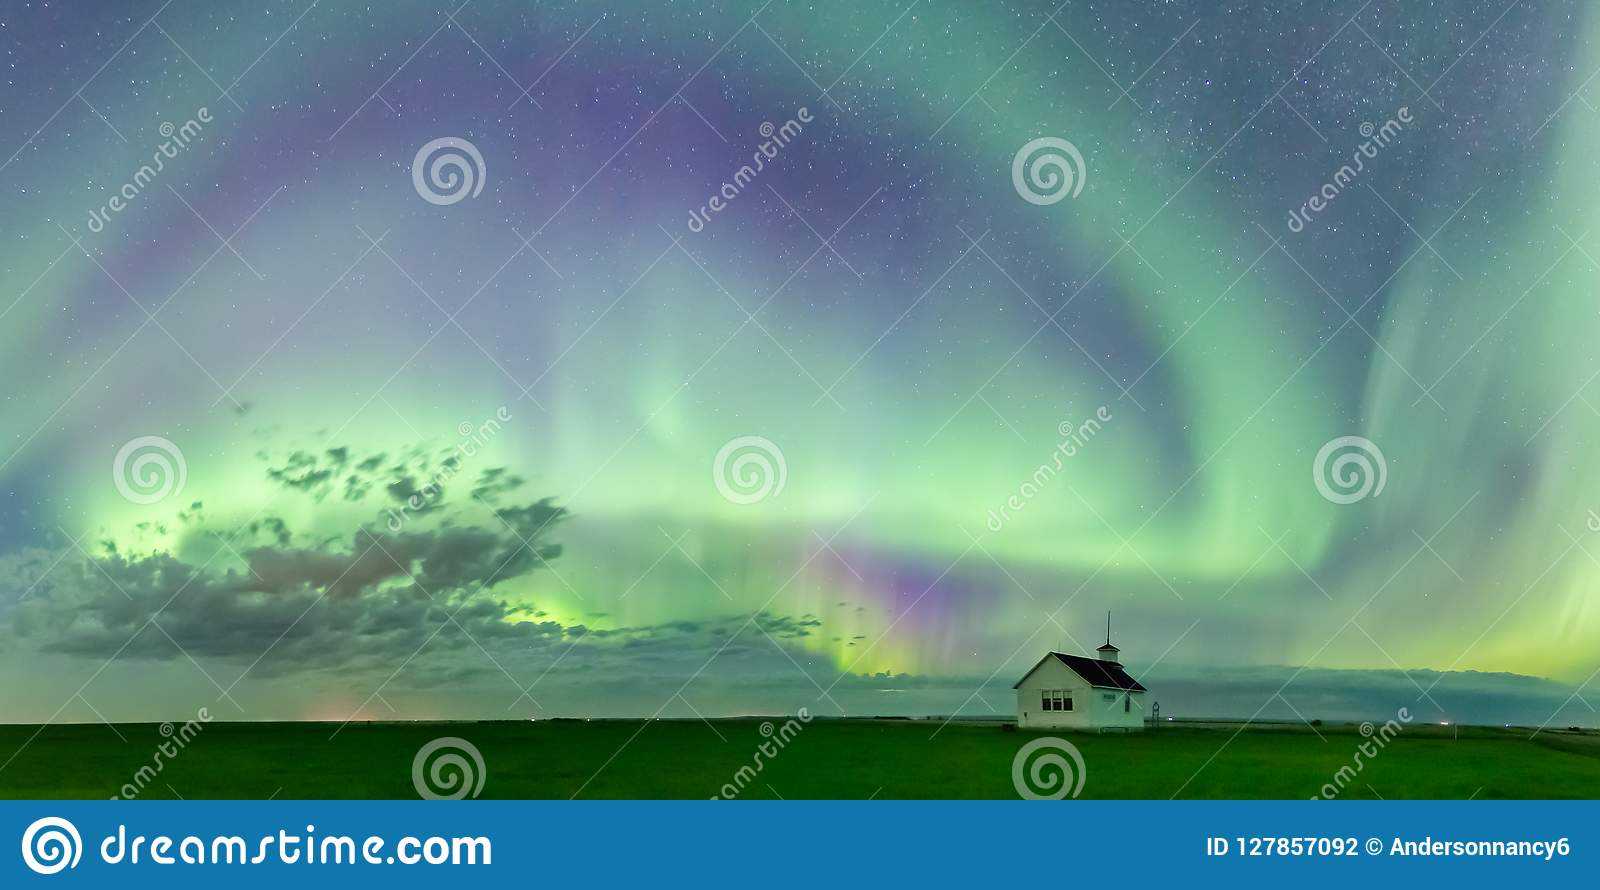 Swirl of Aurora Borealis Northern Lights over the historical North Saskatchewan Landing school